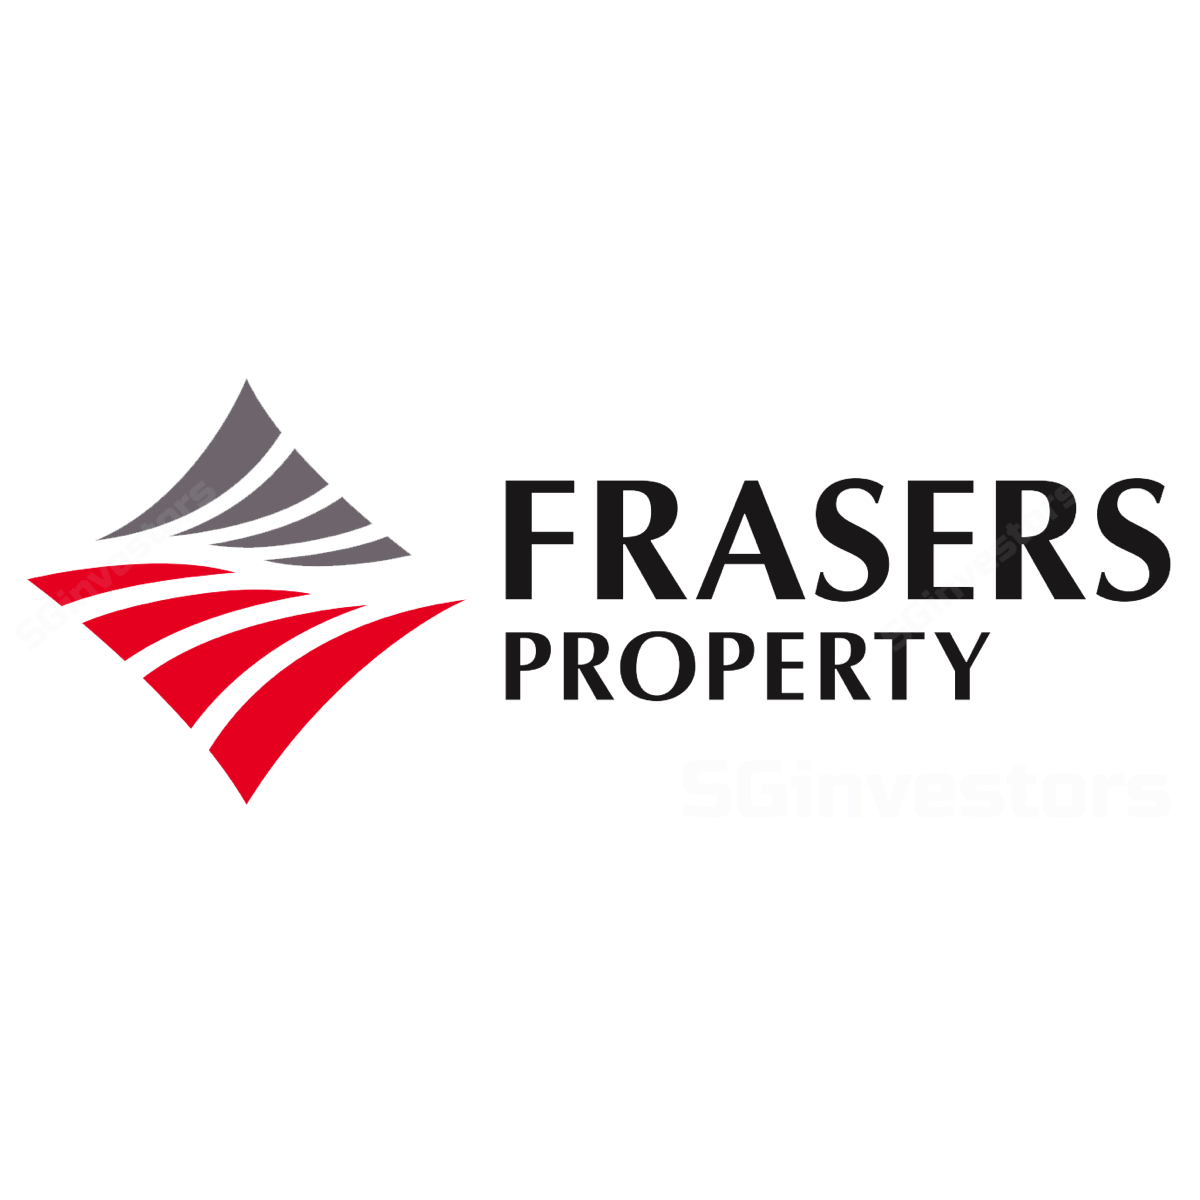 Frasers Property Limited - CGS-CIMB 2018-05-10: Higher Recurring Income Base